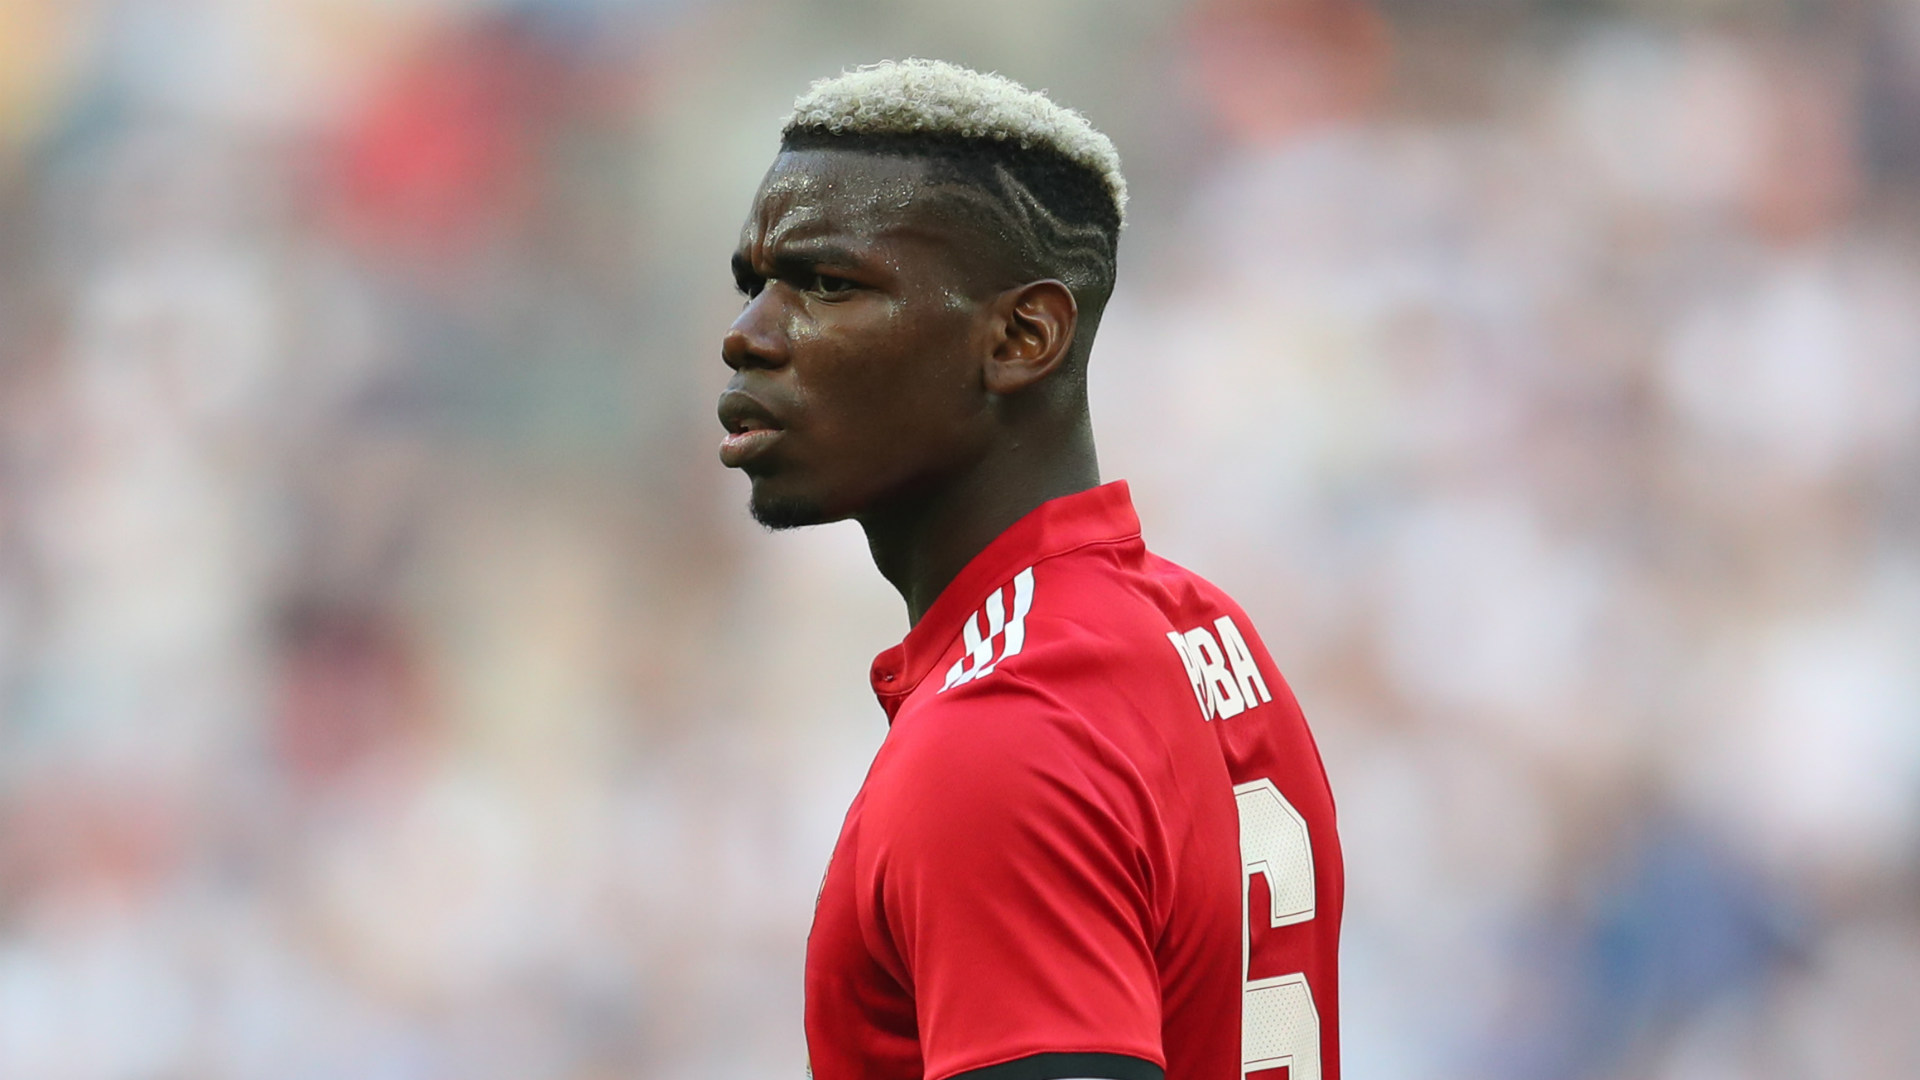 'I'm judged differently': Pogba defends himself against criticism